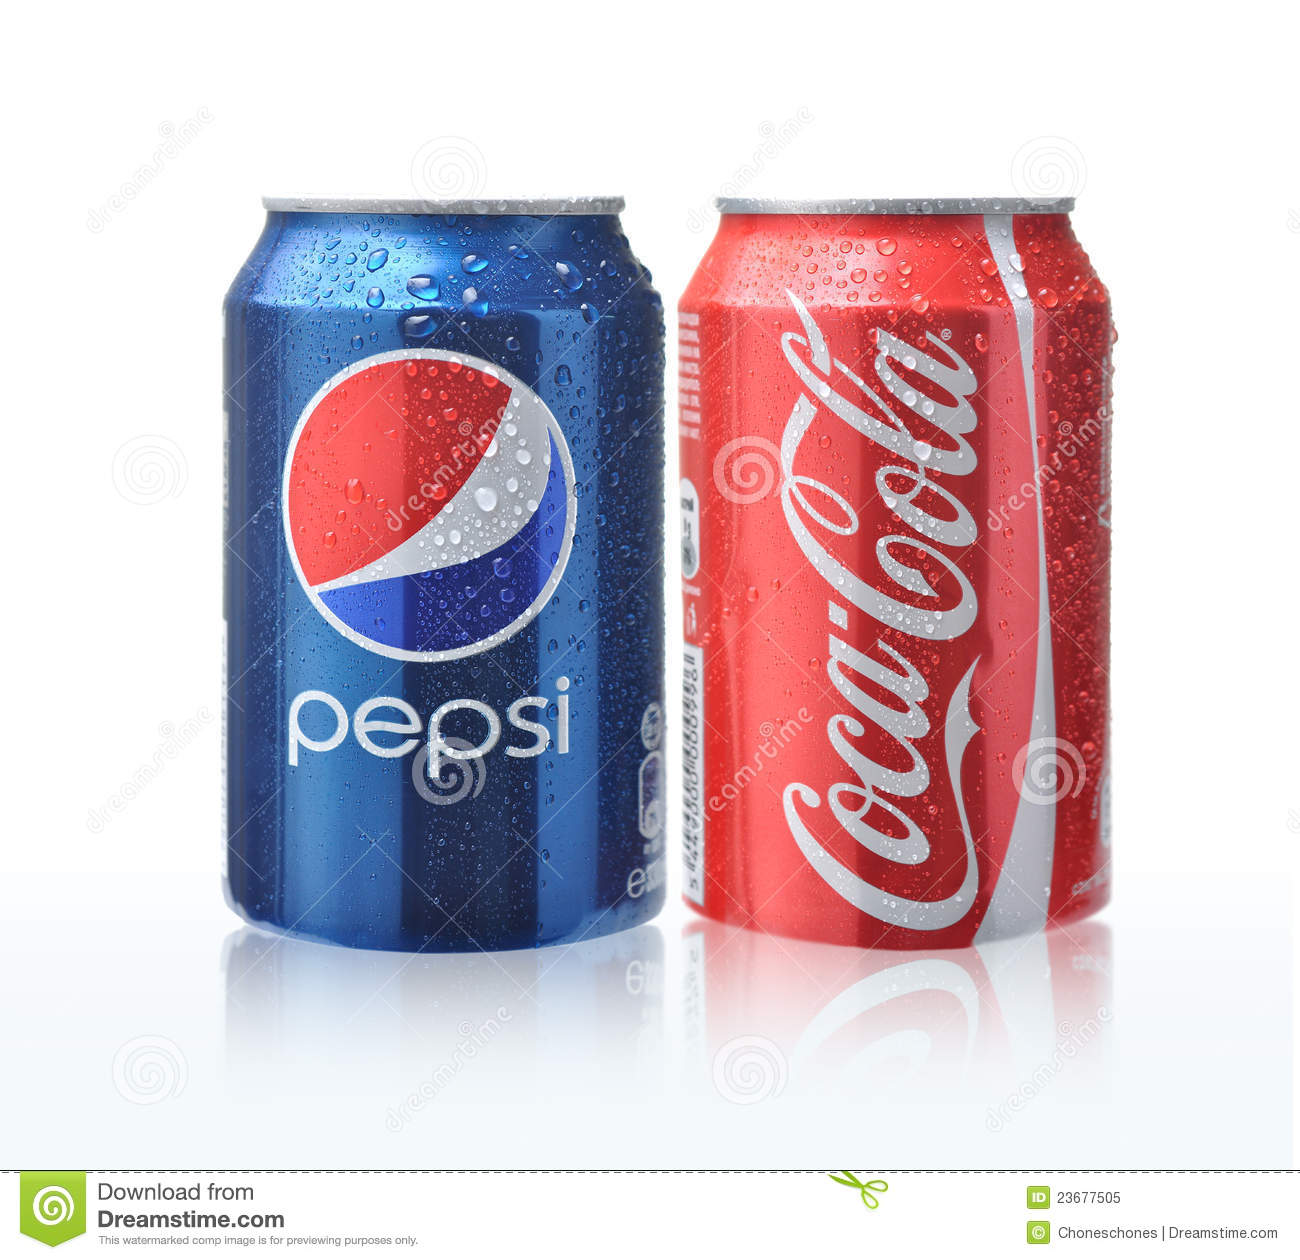 pepsi vs cola Thus was born the dread new coke, a sweeter cola reformulated to best both pepsi and the classic formulation of coke in blind taste tests advertisement.